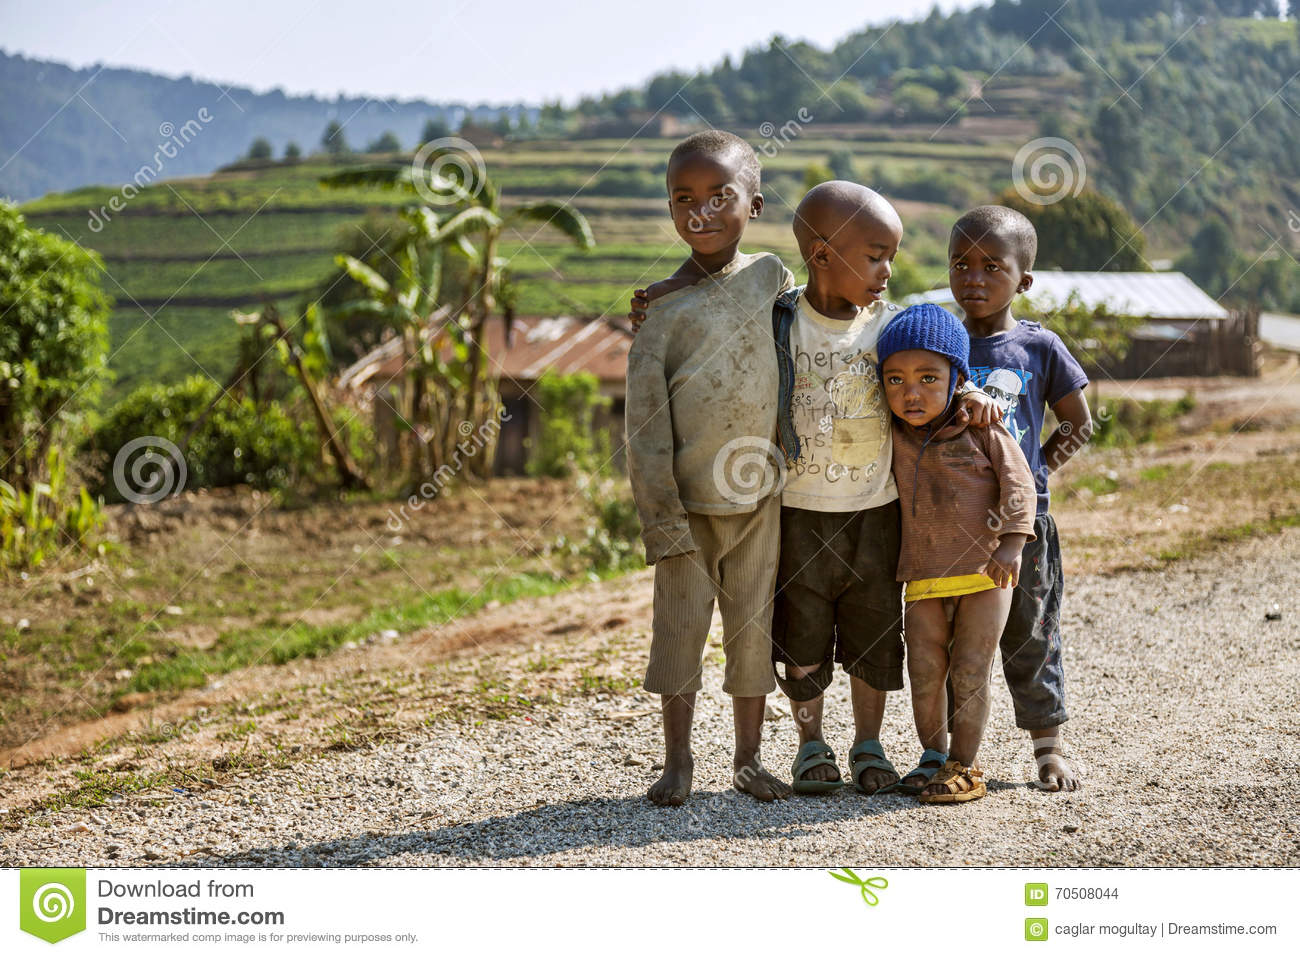 naked childrren RUHENGERI, RWANDA - SEPTEMBER 7, 2015: Unidentified children. The African  children stick